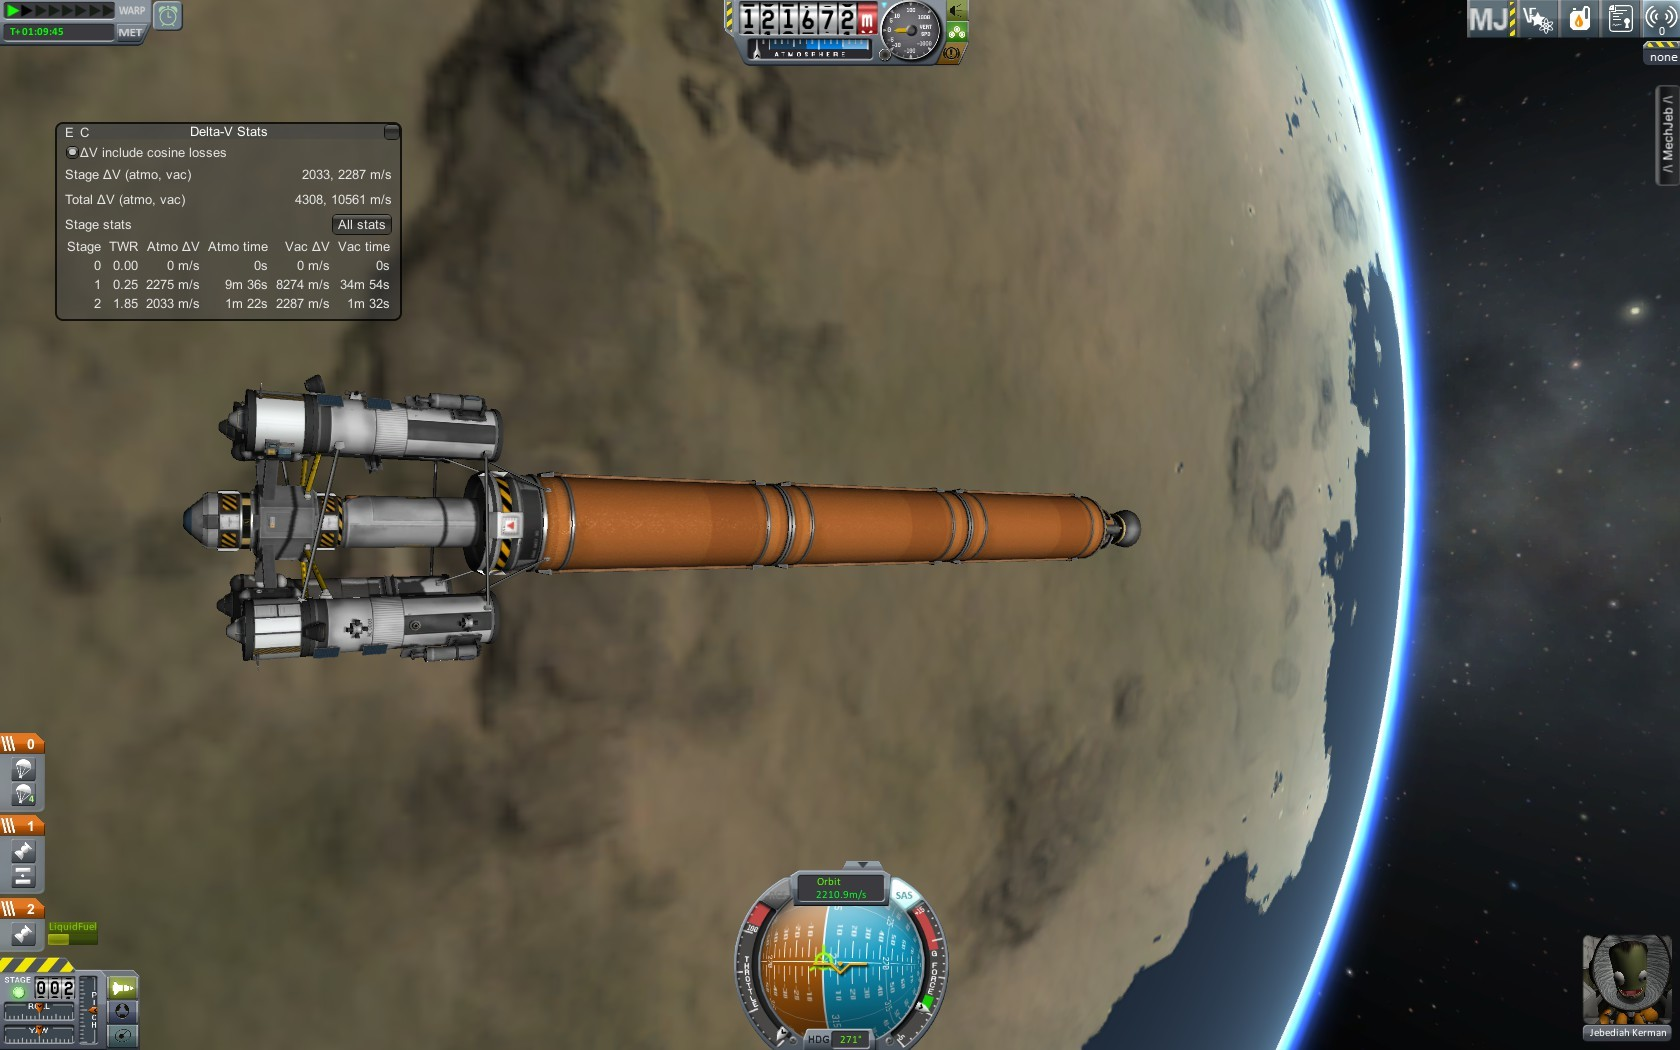 🚀 The Kerbal Thread - Share Your Kerbal Creations - What the Daily WTF?